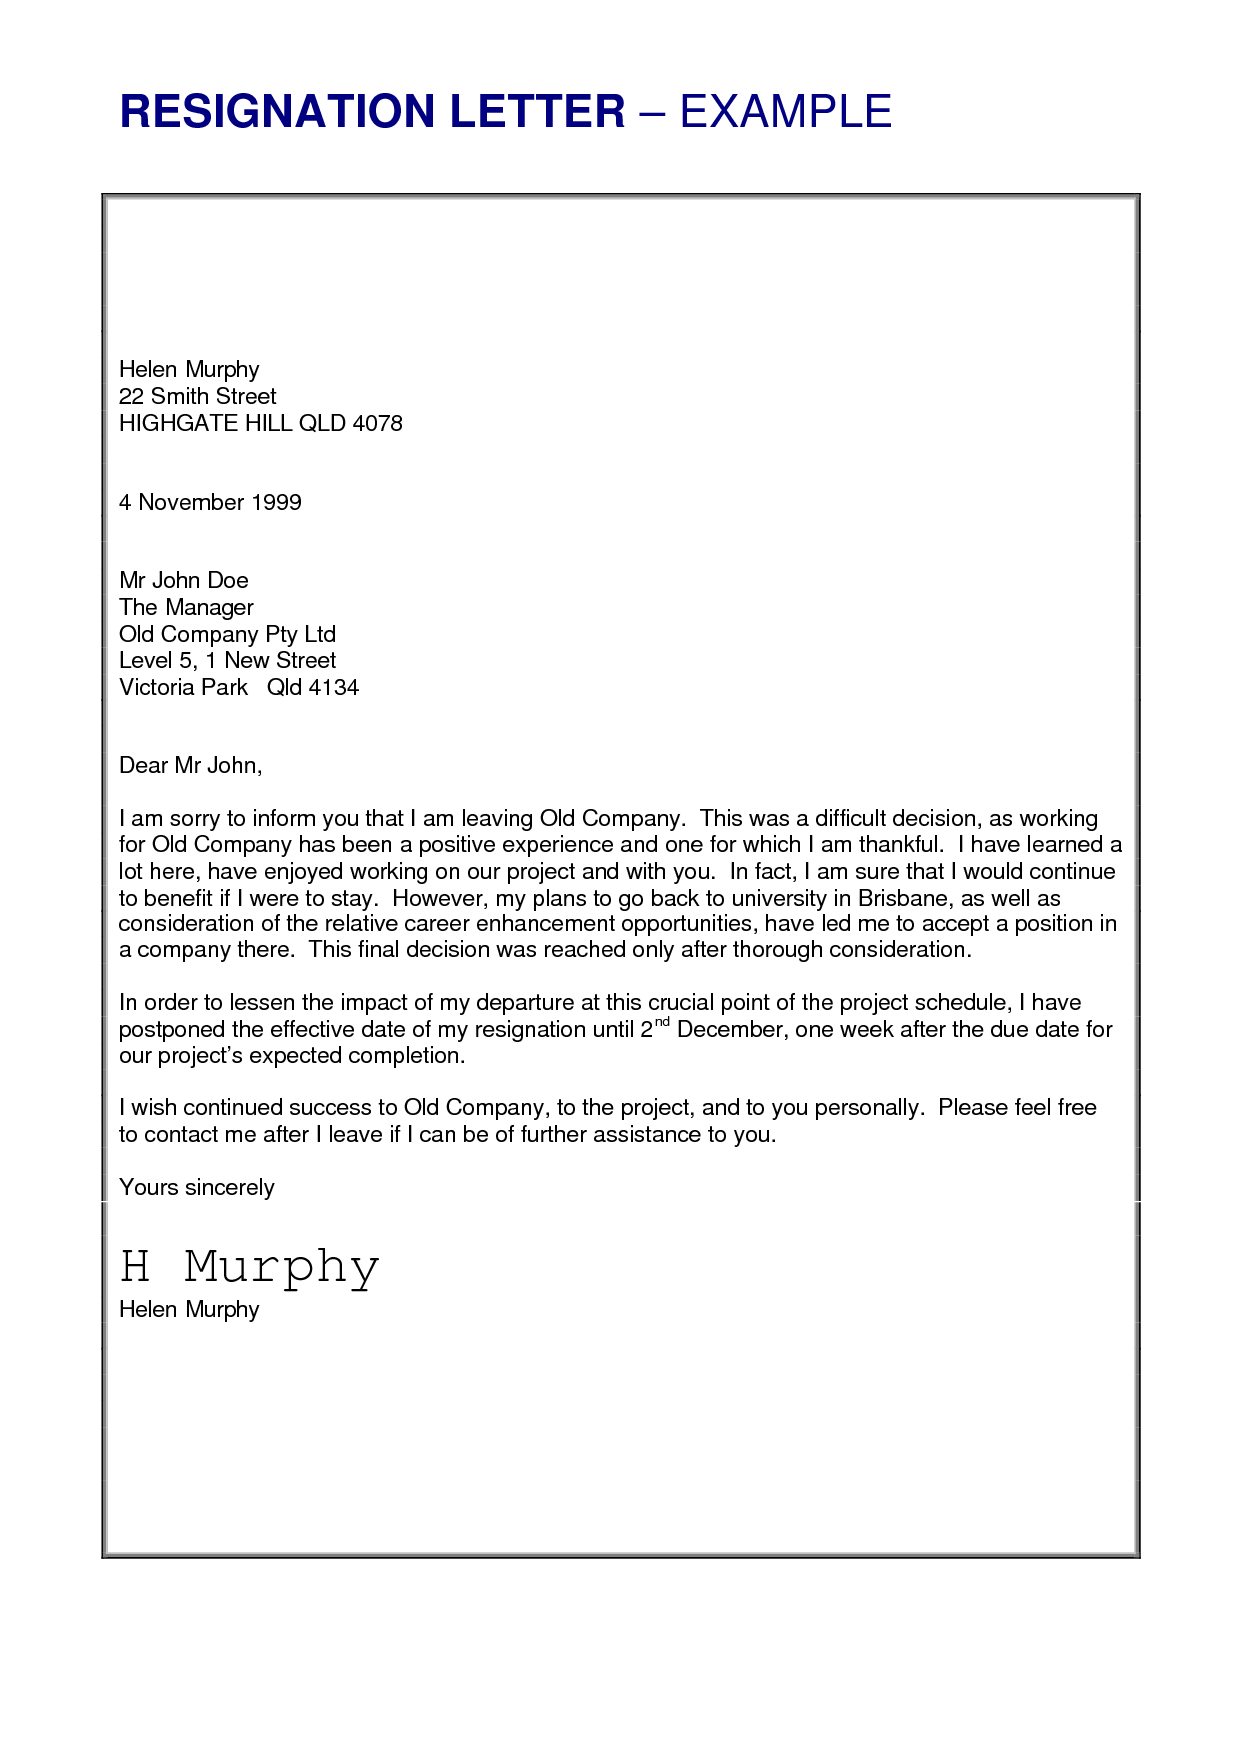 Job resignation letter sample loganun blog best letter job resignation letter sample loganun blog altavistaventures Gallery